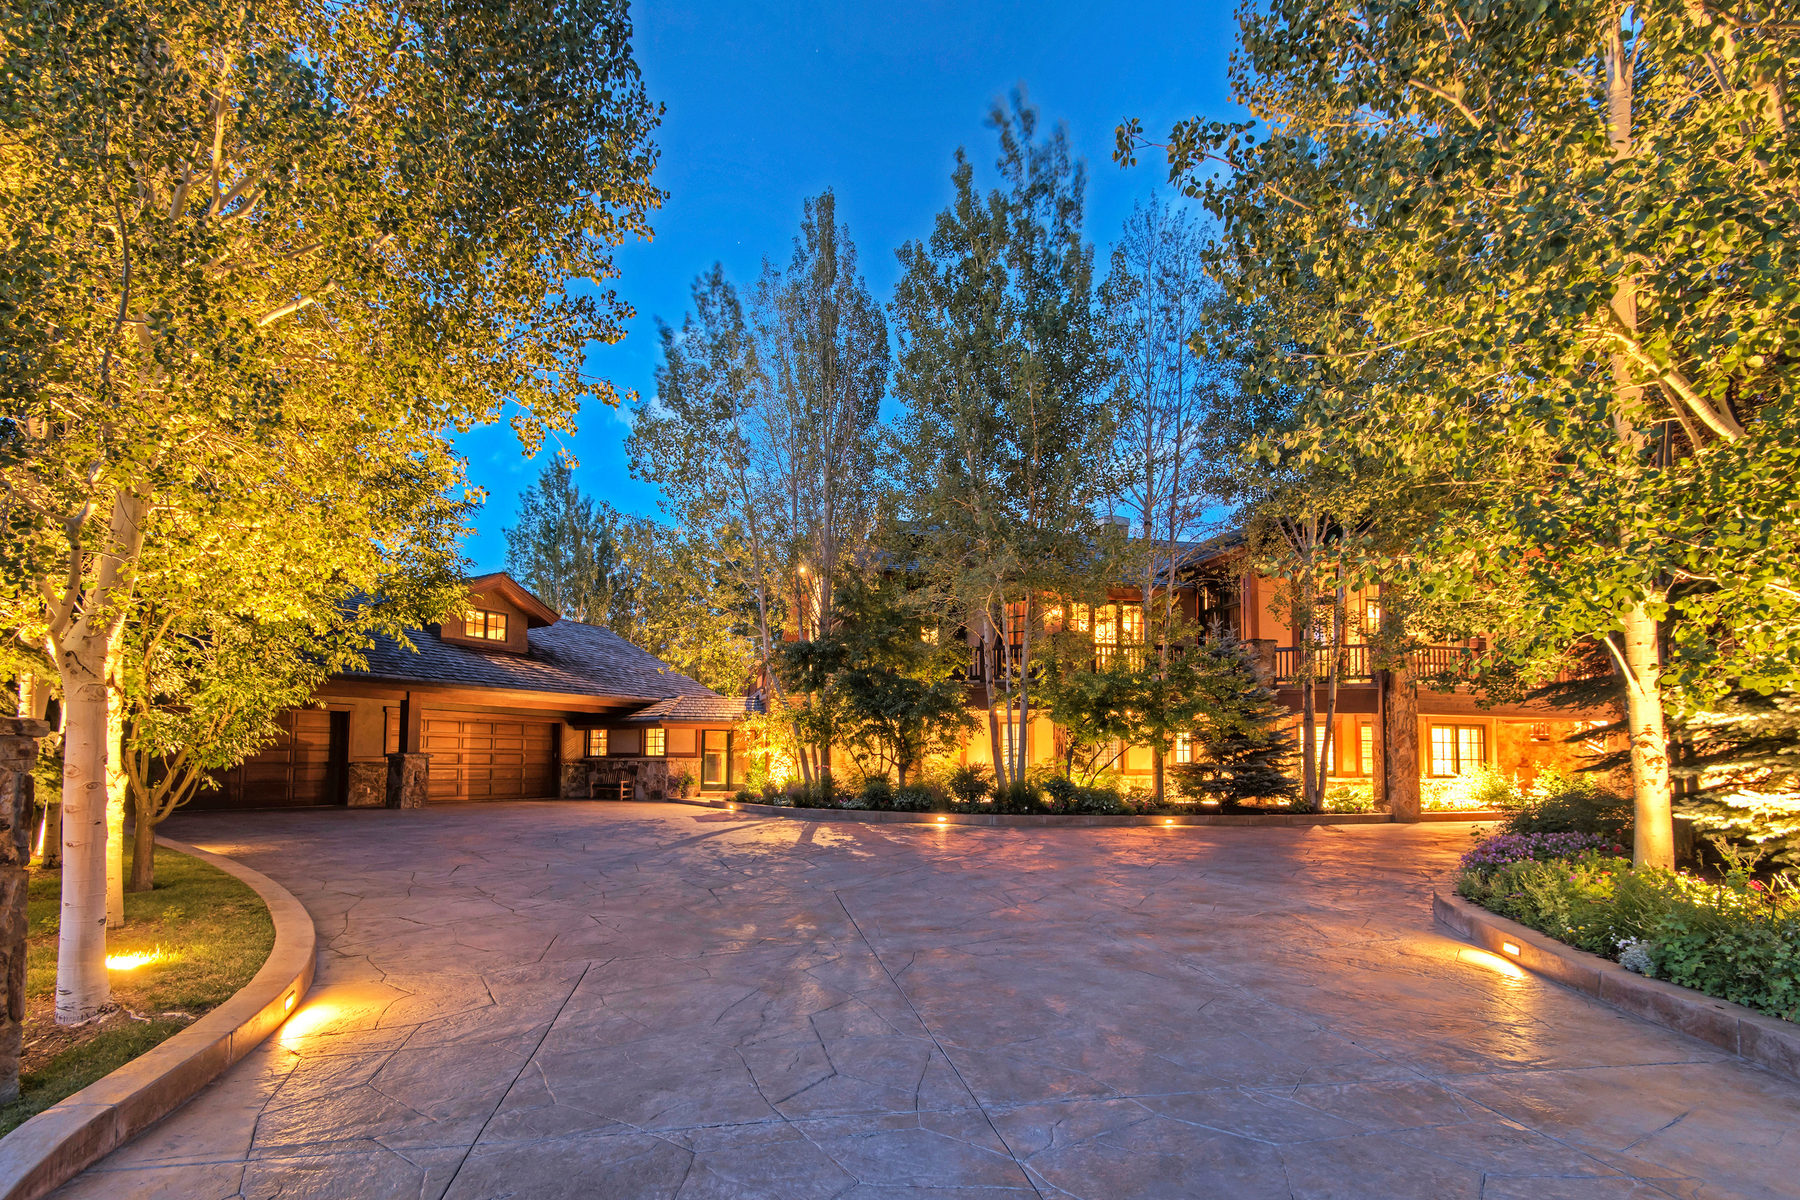 Moradia para Venda às Stunning Park Meadows Estate on over 2.5 Acres 2300 Lucky John Dr Park City, Utah, 84060 Estados Unidos